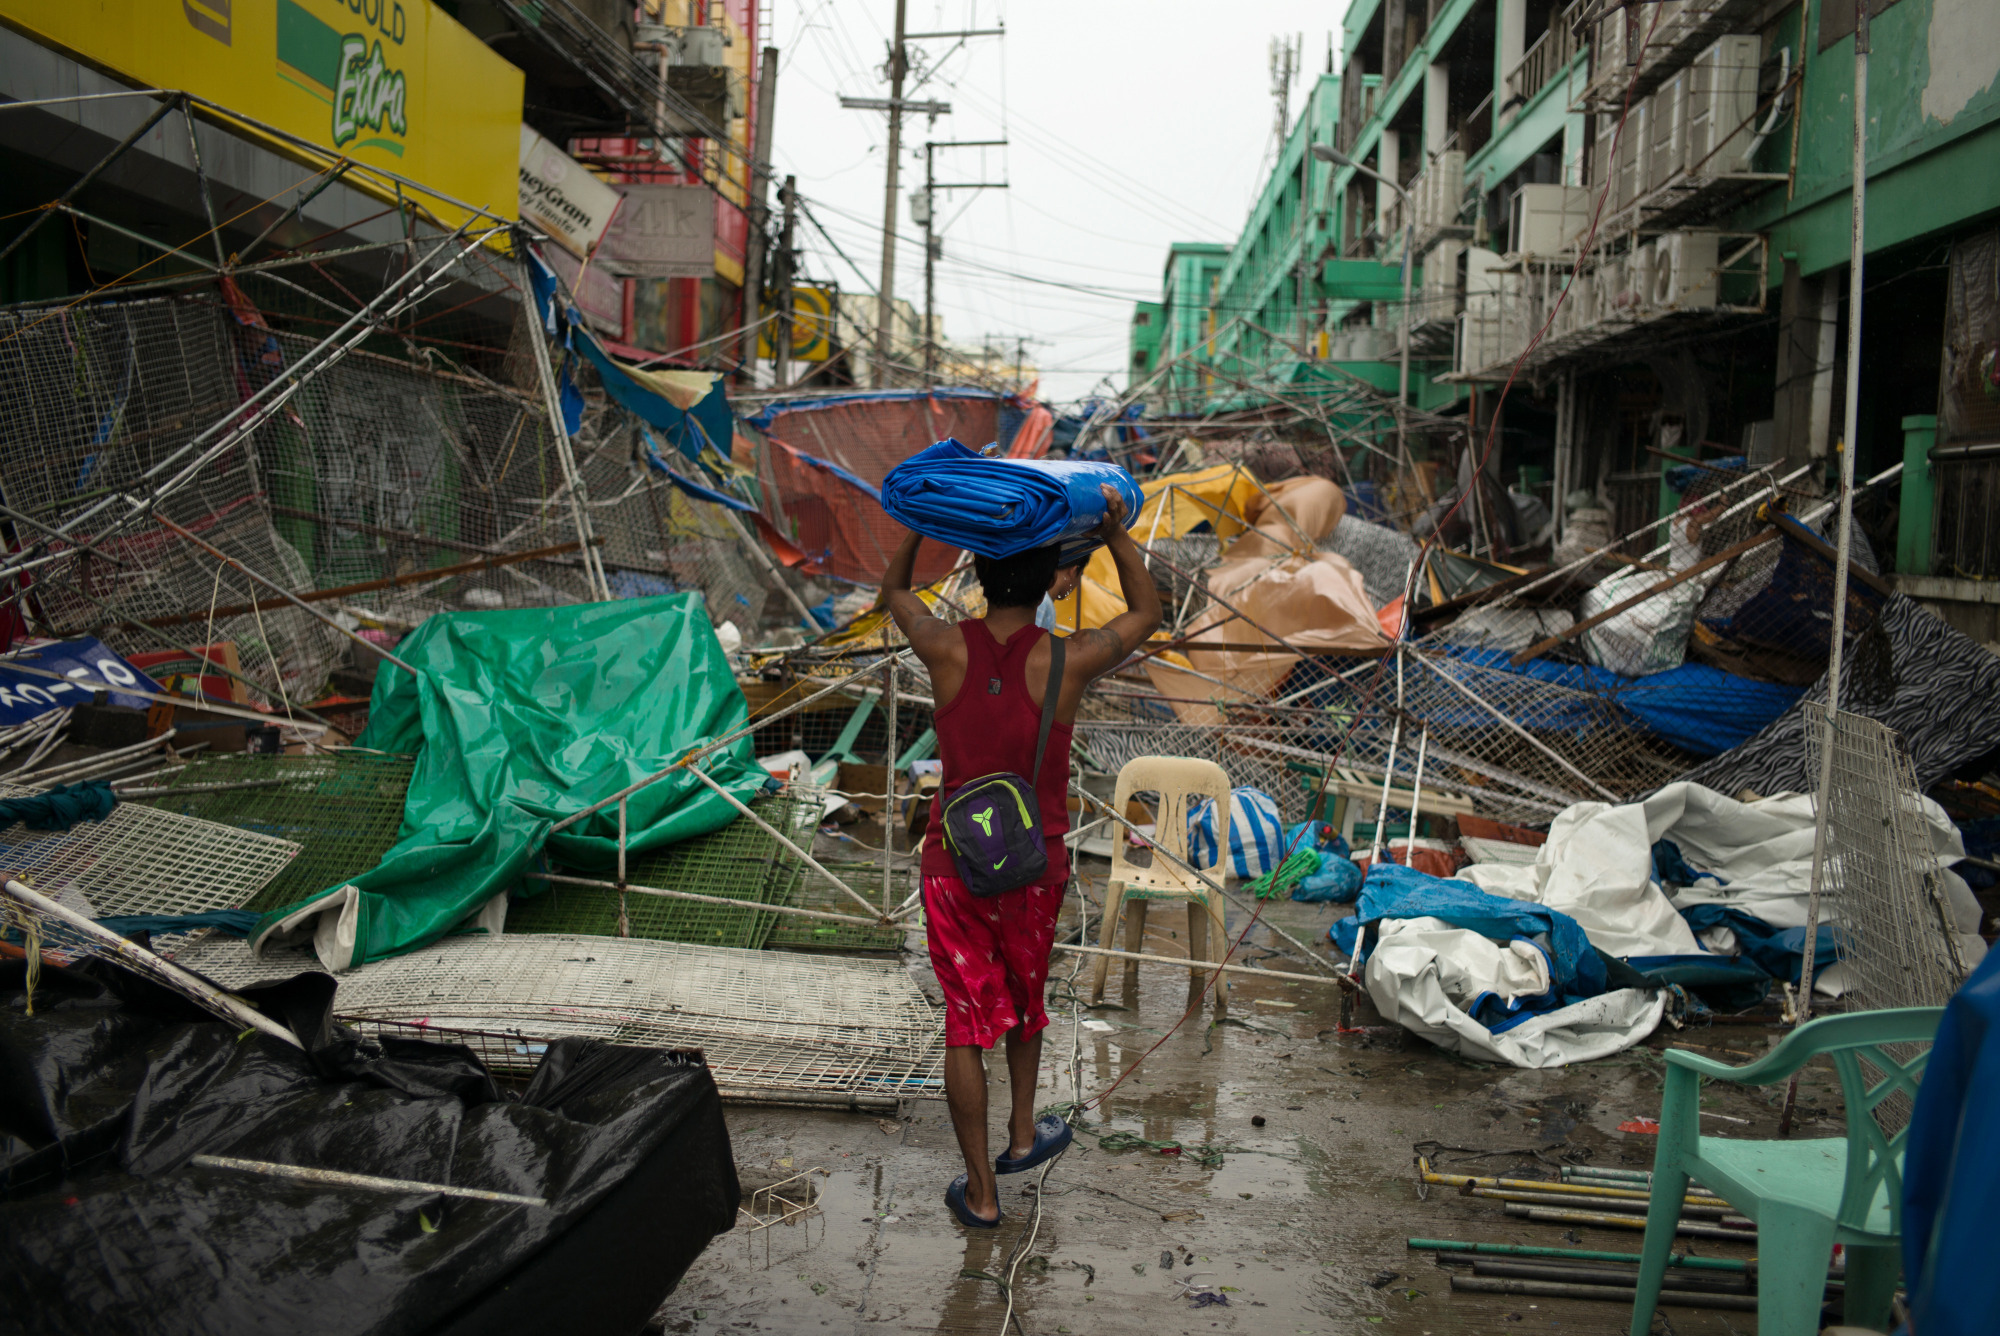 bloomberg.com - Cecilia Yap - 7% Inflation in the Philippines May Be Just Around the Corner